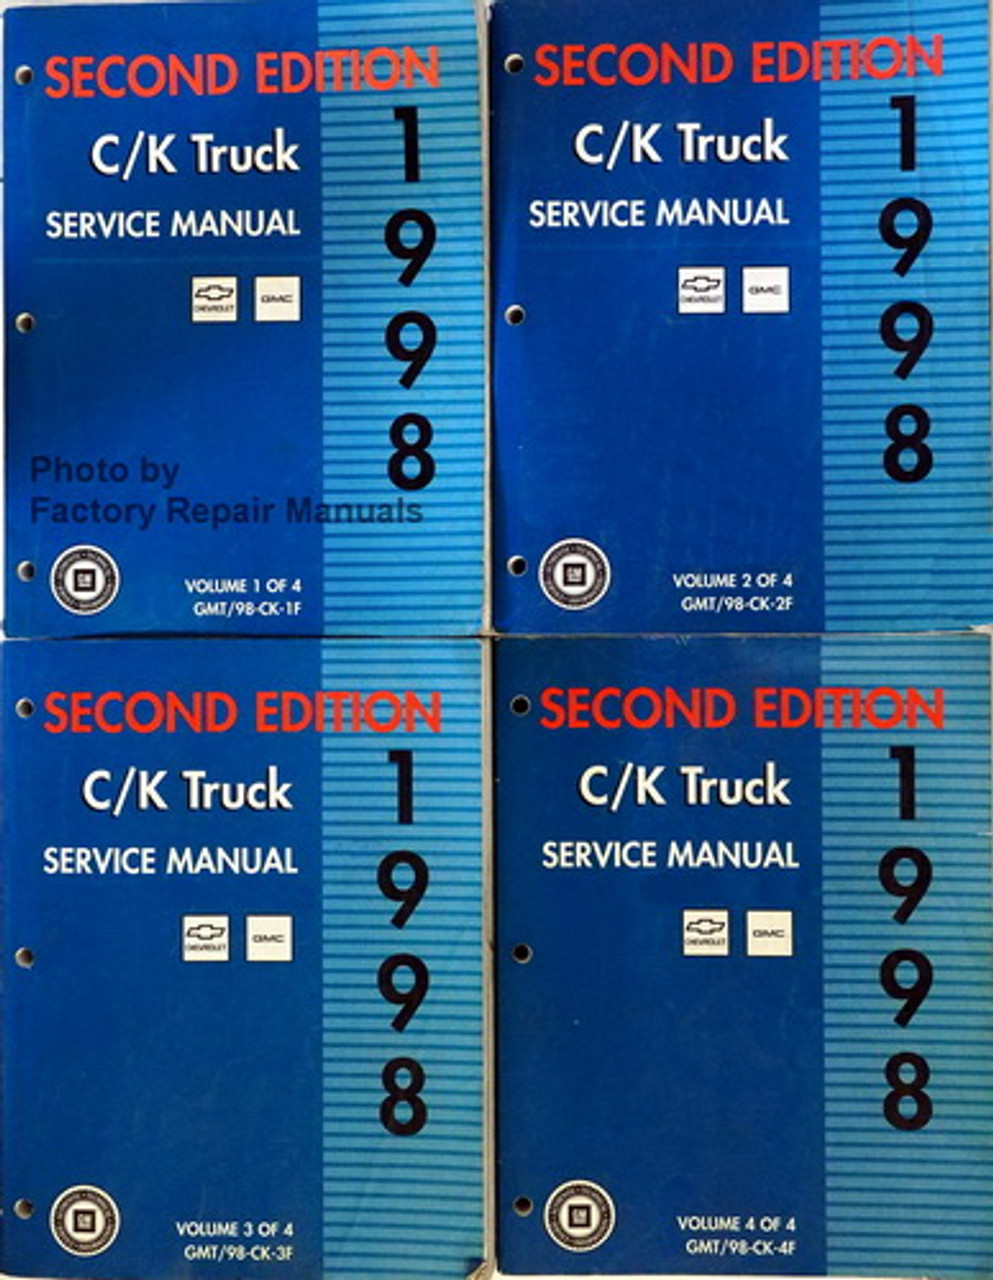 1998 Chevy Truck Repair Manual